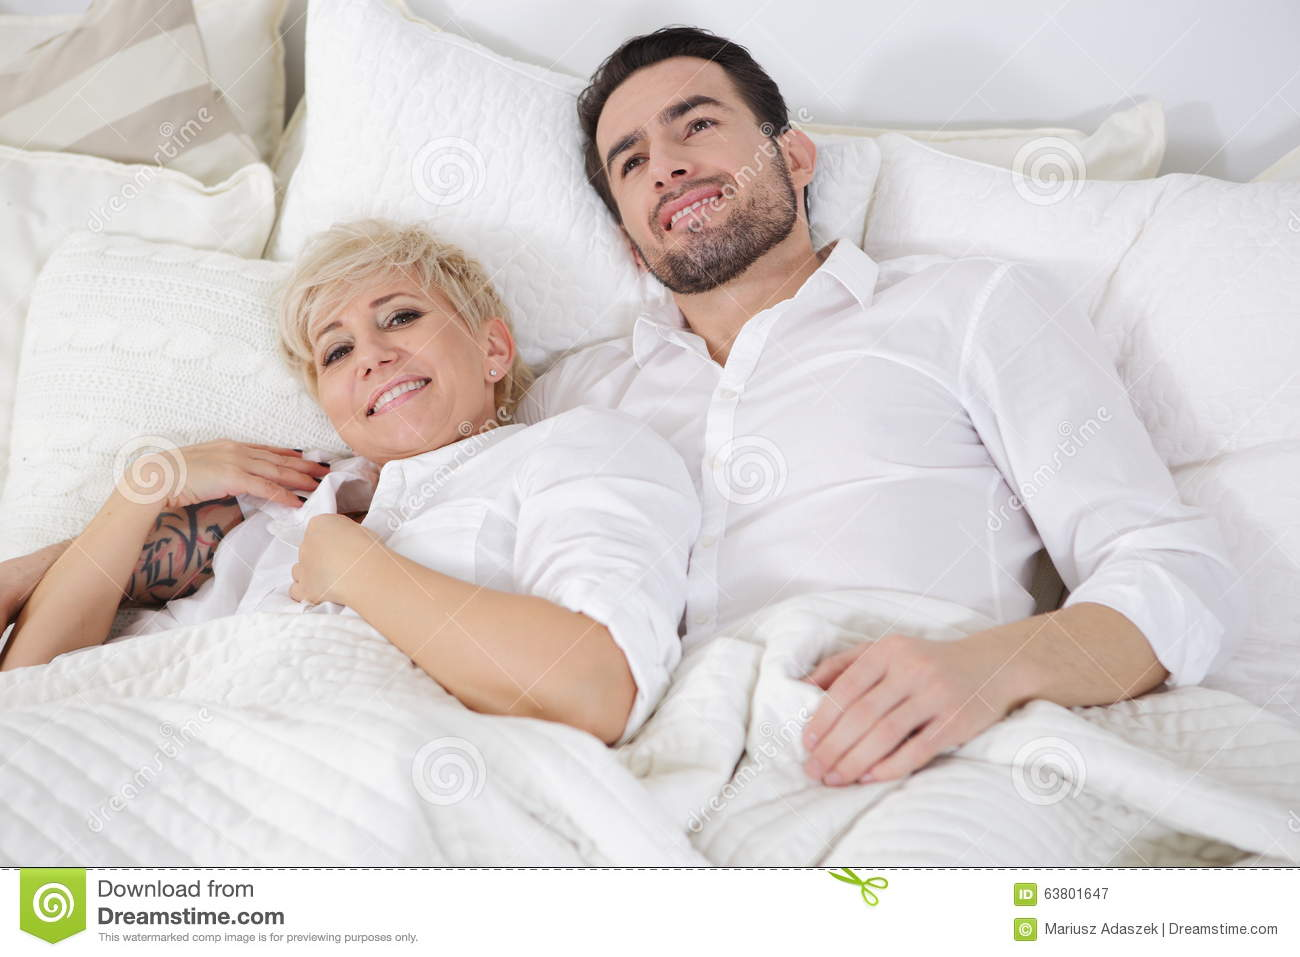 Couple on bed touching and groping one another